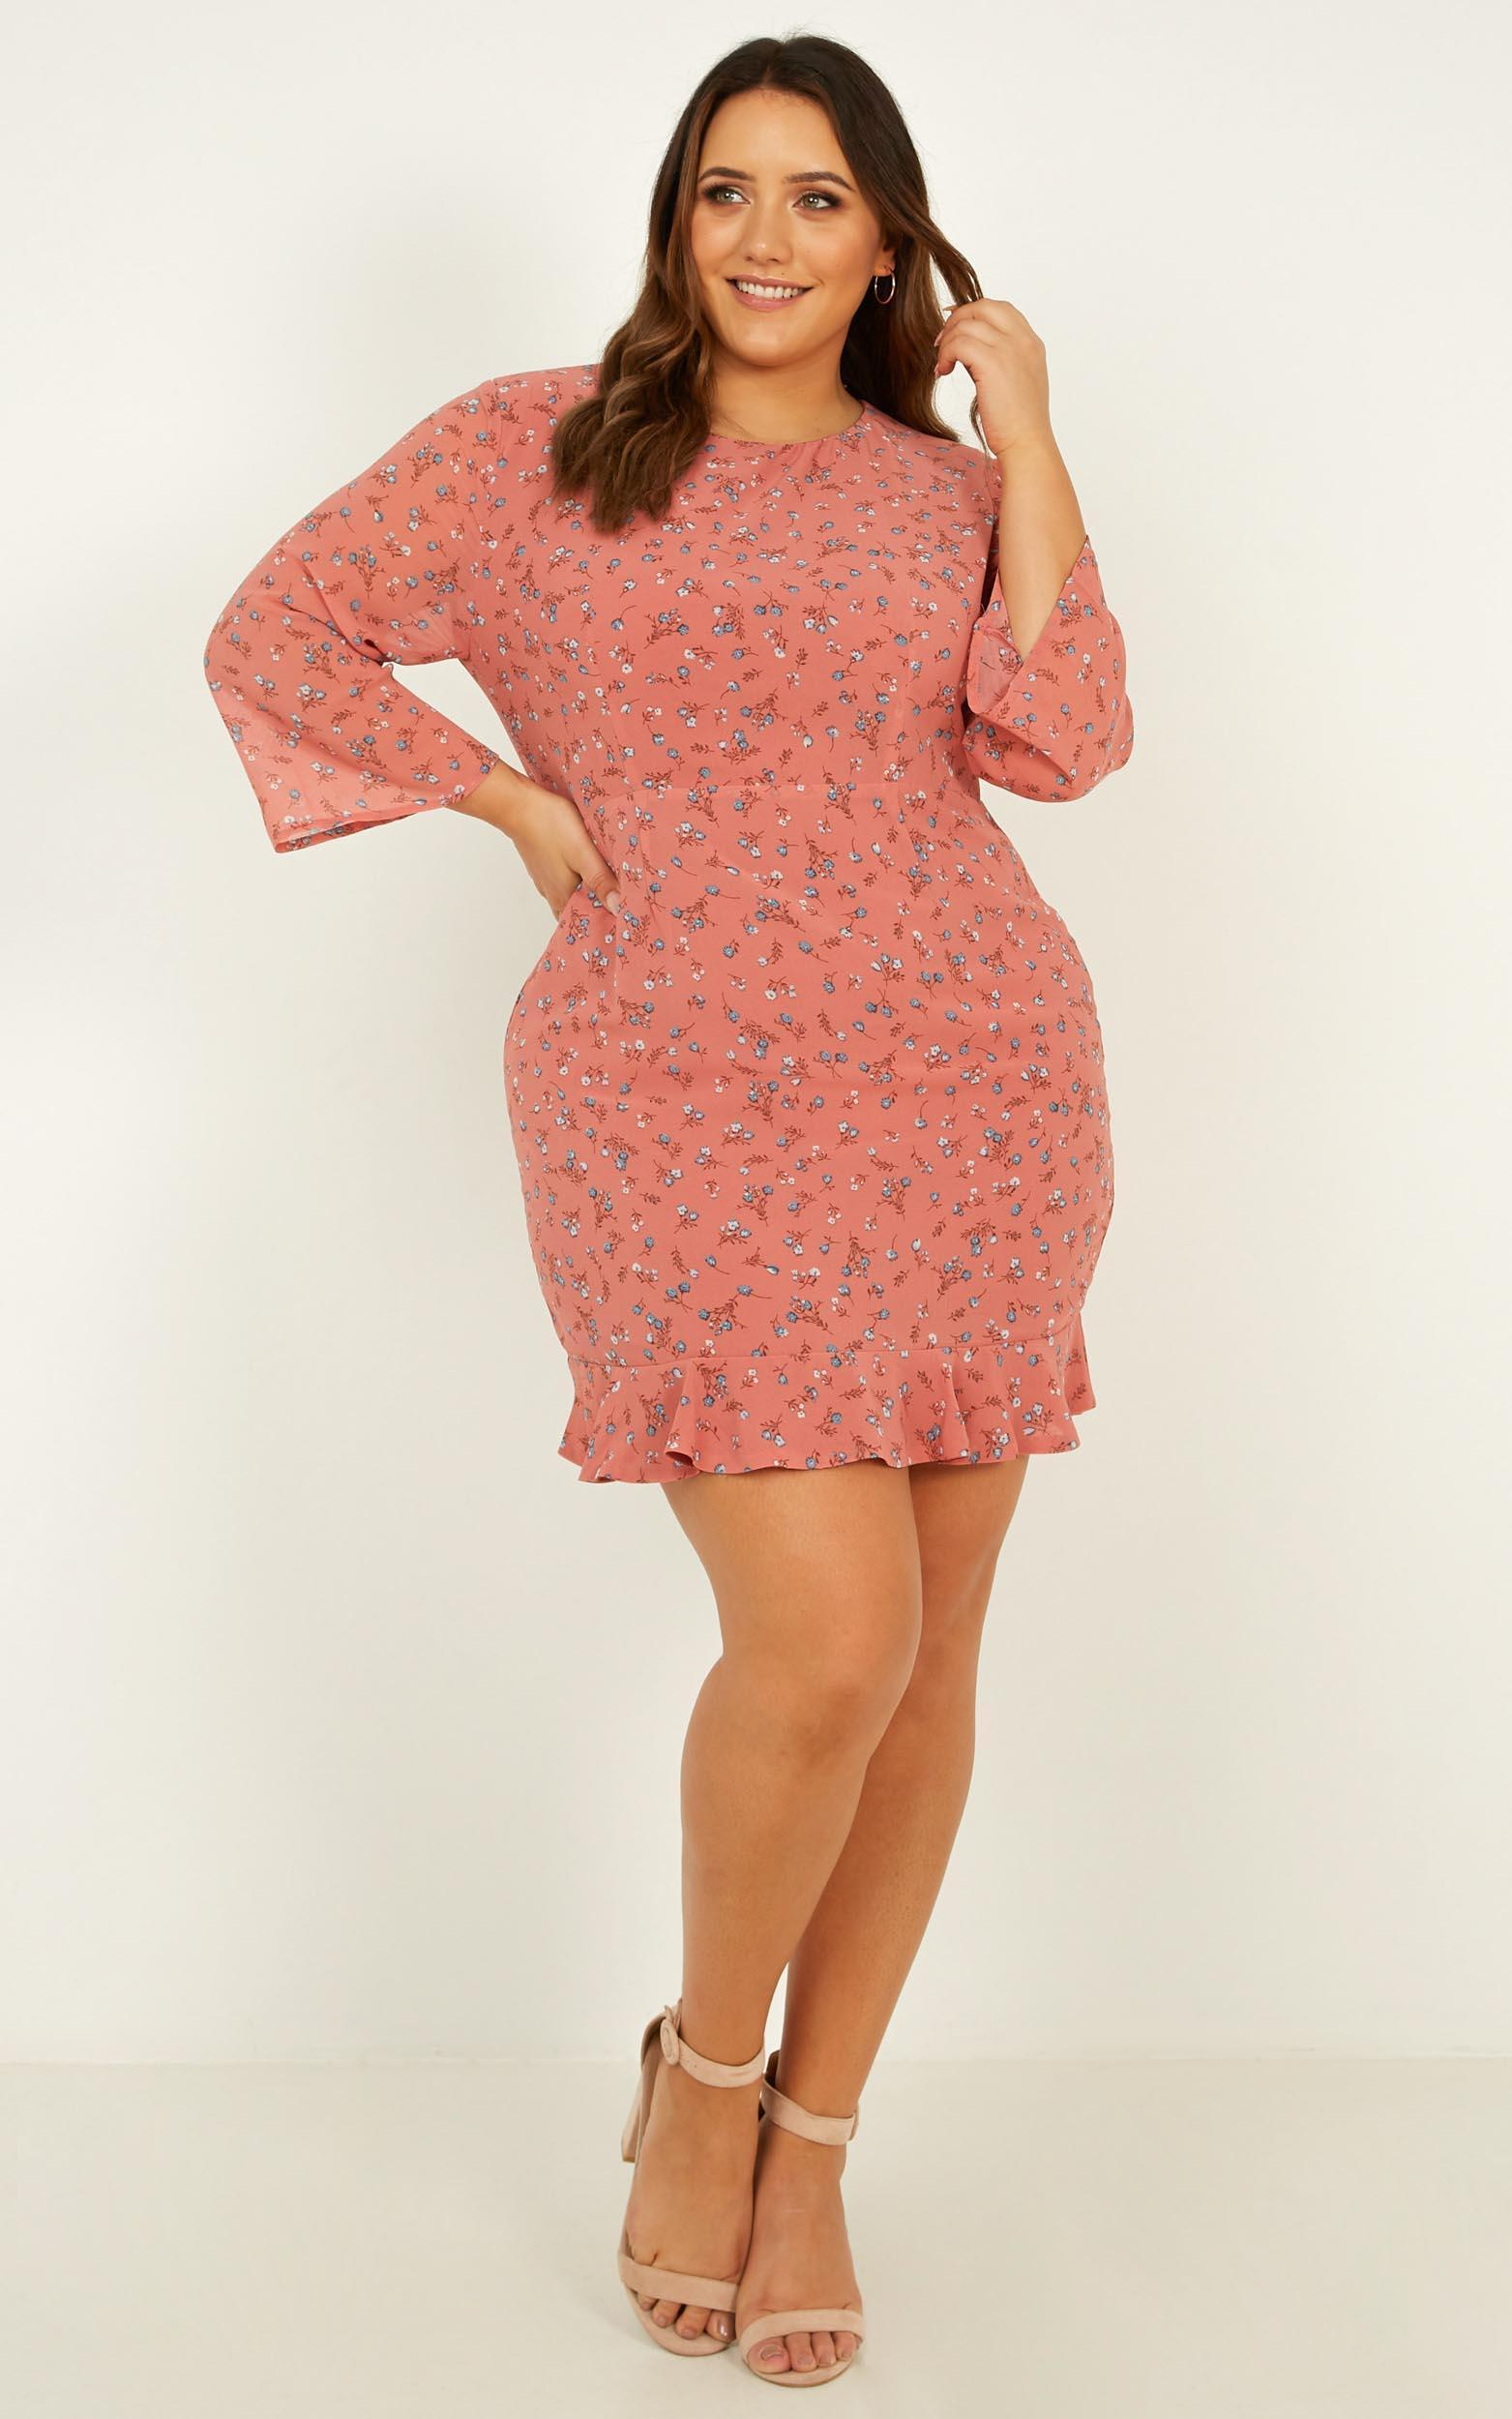 Baby You Got Me Dress In dusty rose floral - 20 (XXXXL), Pink, hi-res image number null